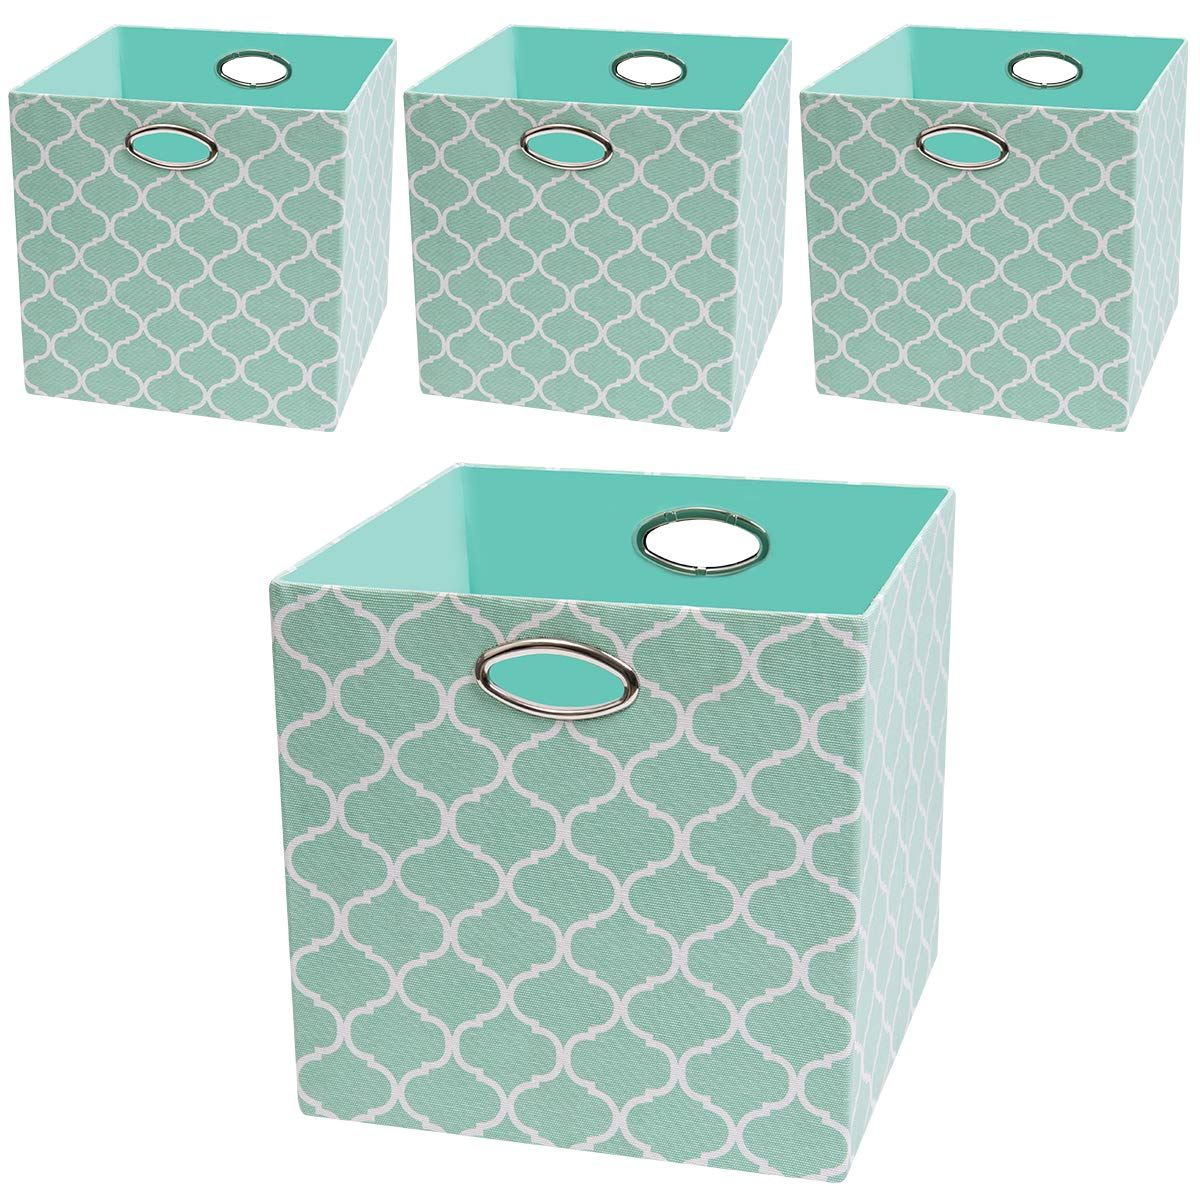 Posprica Foldable Storage Bins, 13×13 Storage Baskets Cubes Containers Closet Organizers, More Durable Fabric Boxes with Above Average Quality (4pcs, Grey Lantern) Nicemoon